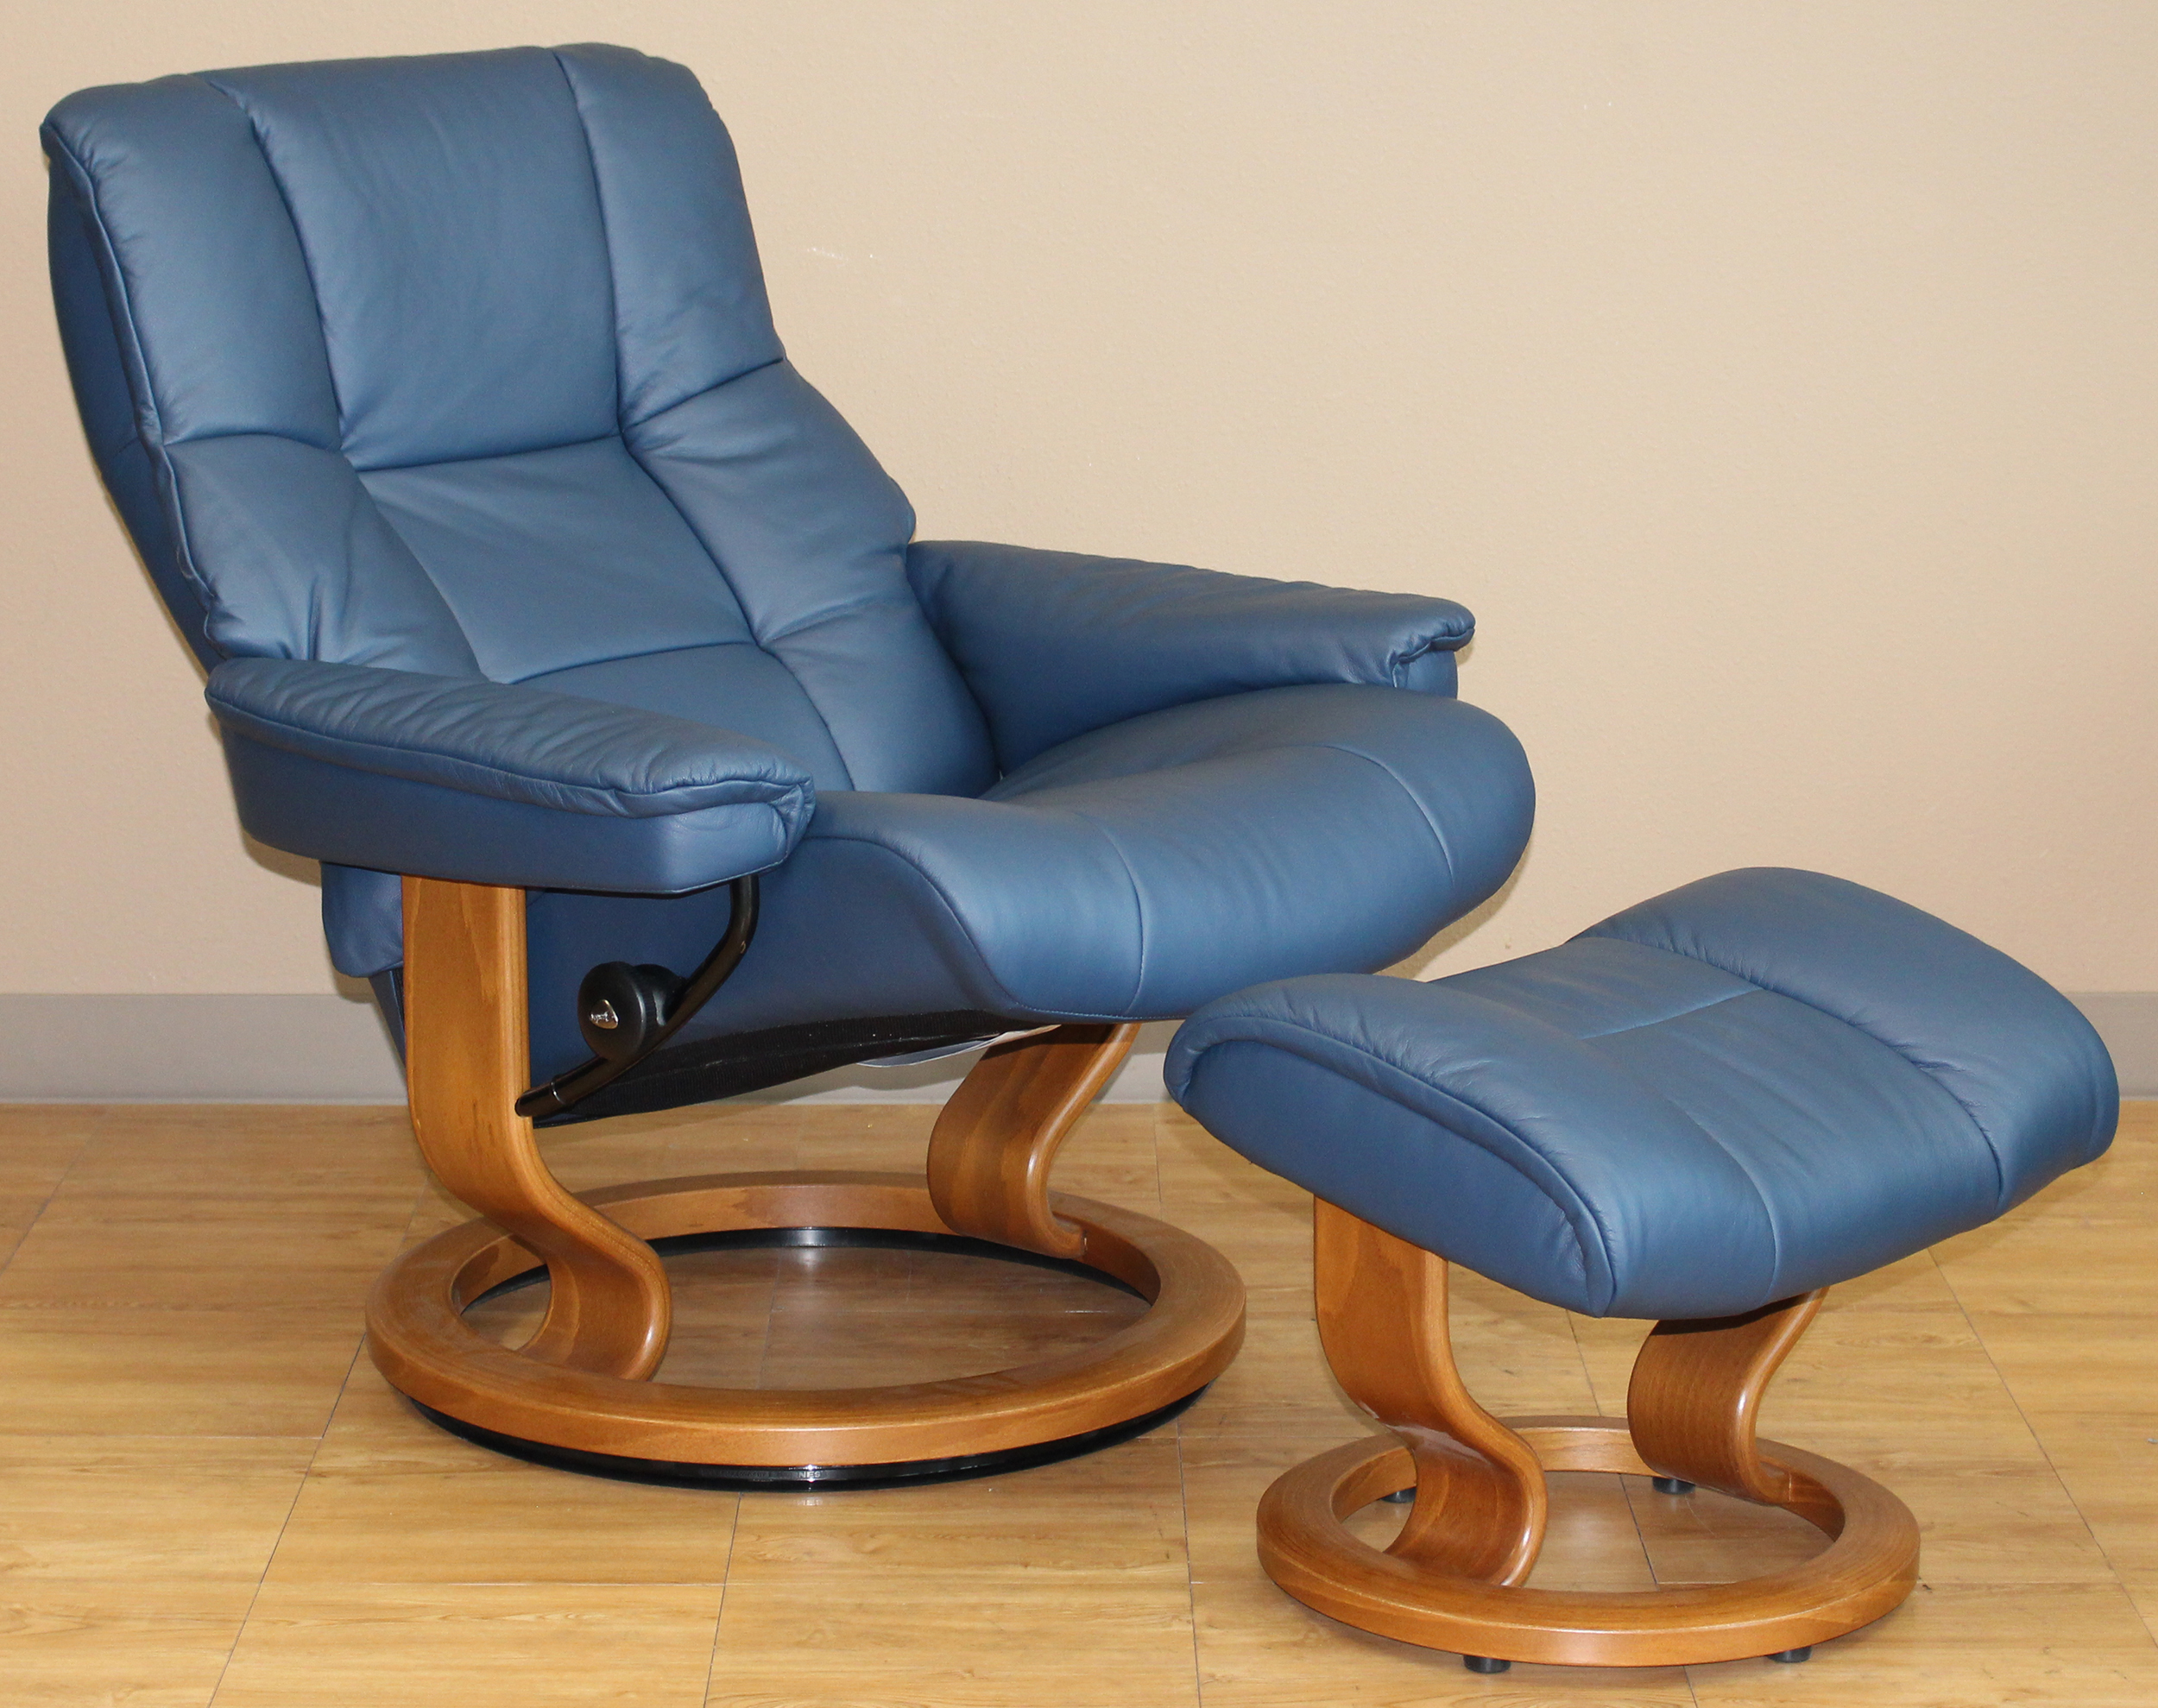 Stressless Mayfair Recliner Chair Paloma Oxford Blue Leather by Ekornes & Stressless Mayfair Medium Paloma Oxford Blue Leather Recliner ... islam-shia.org